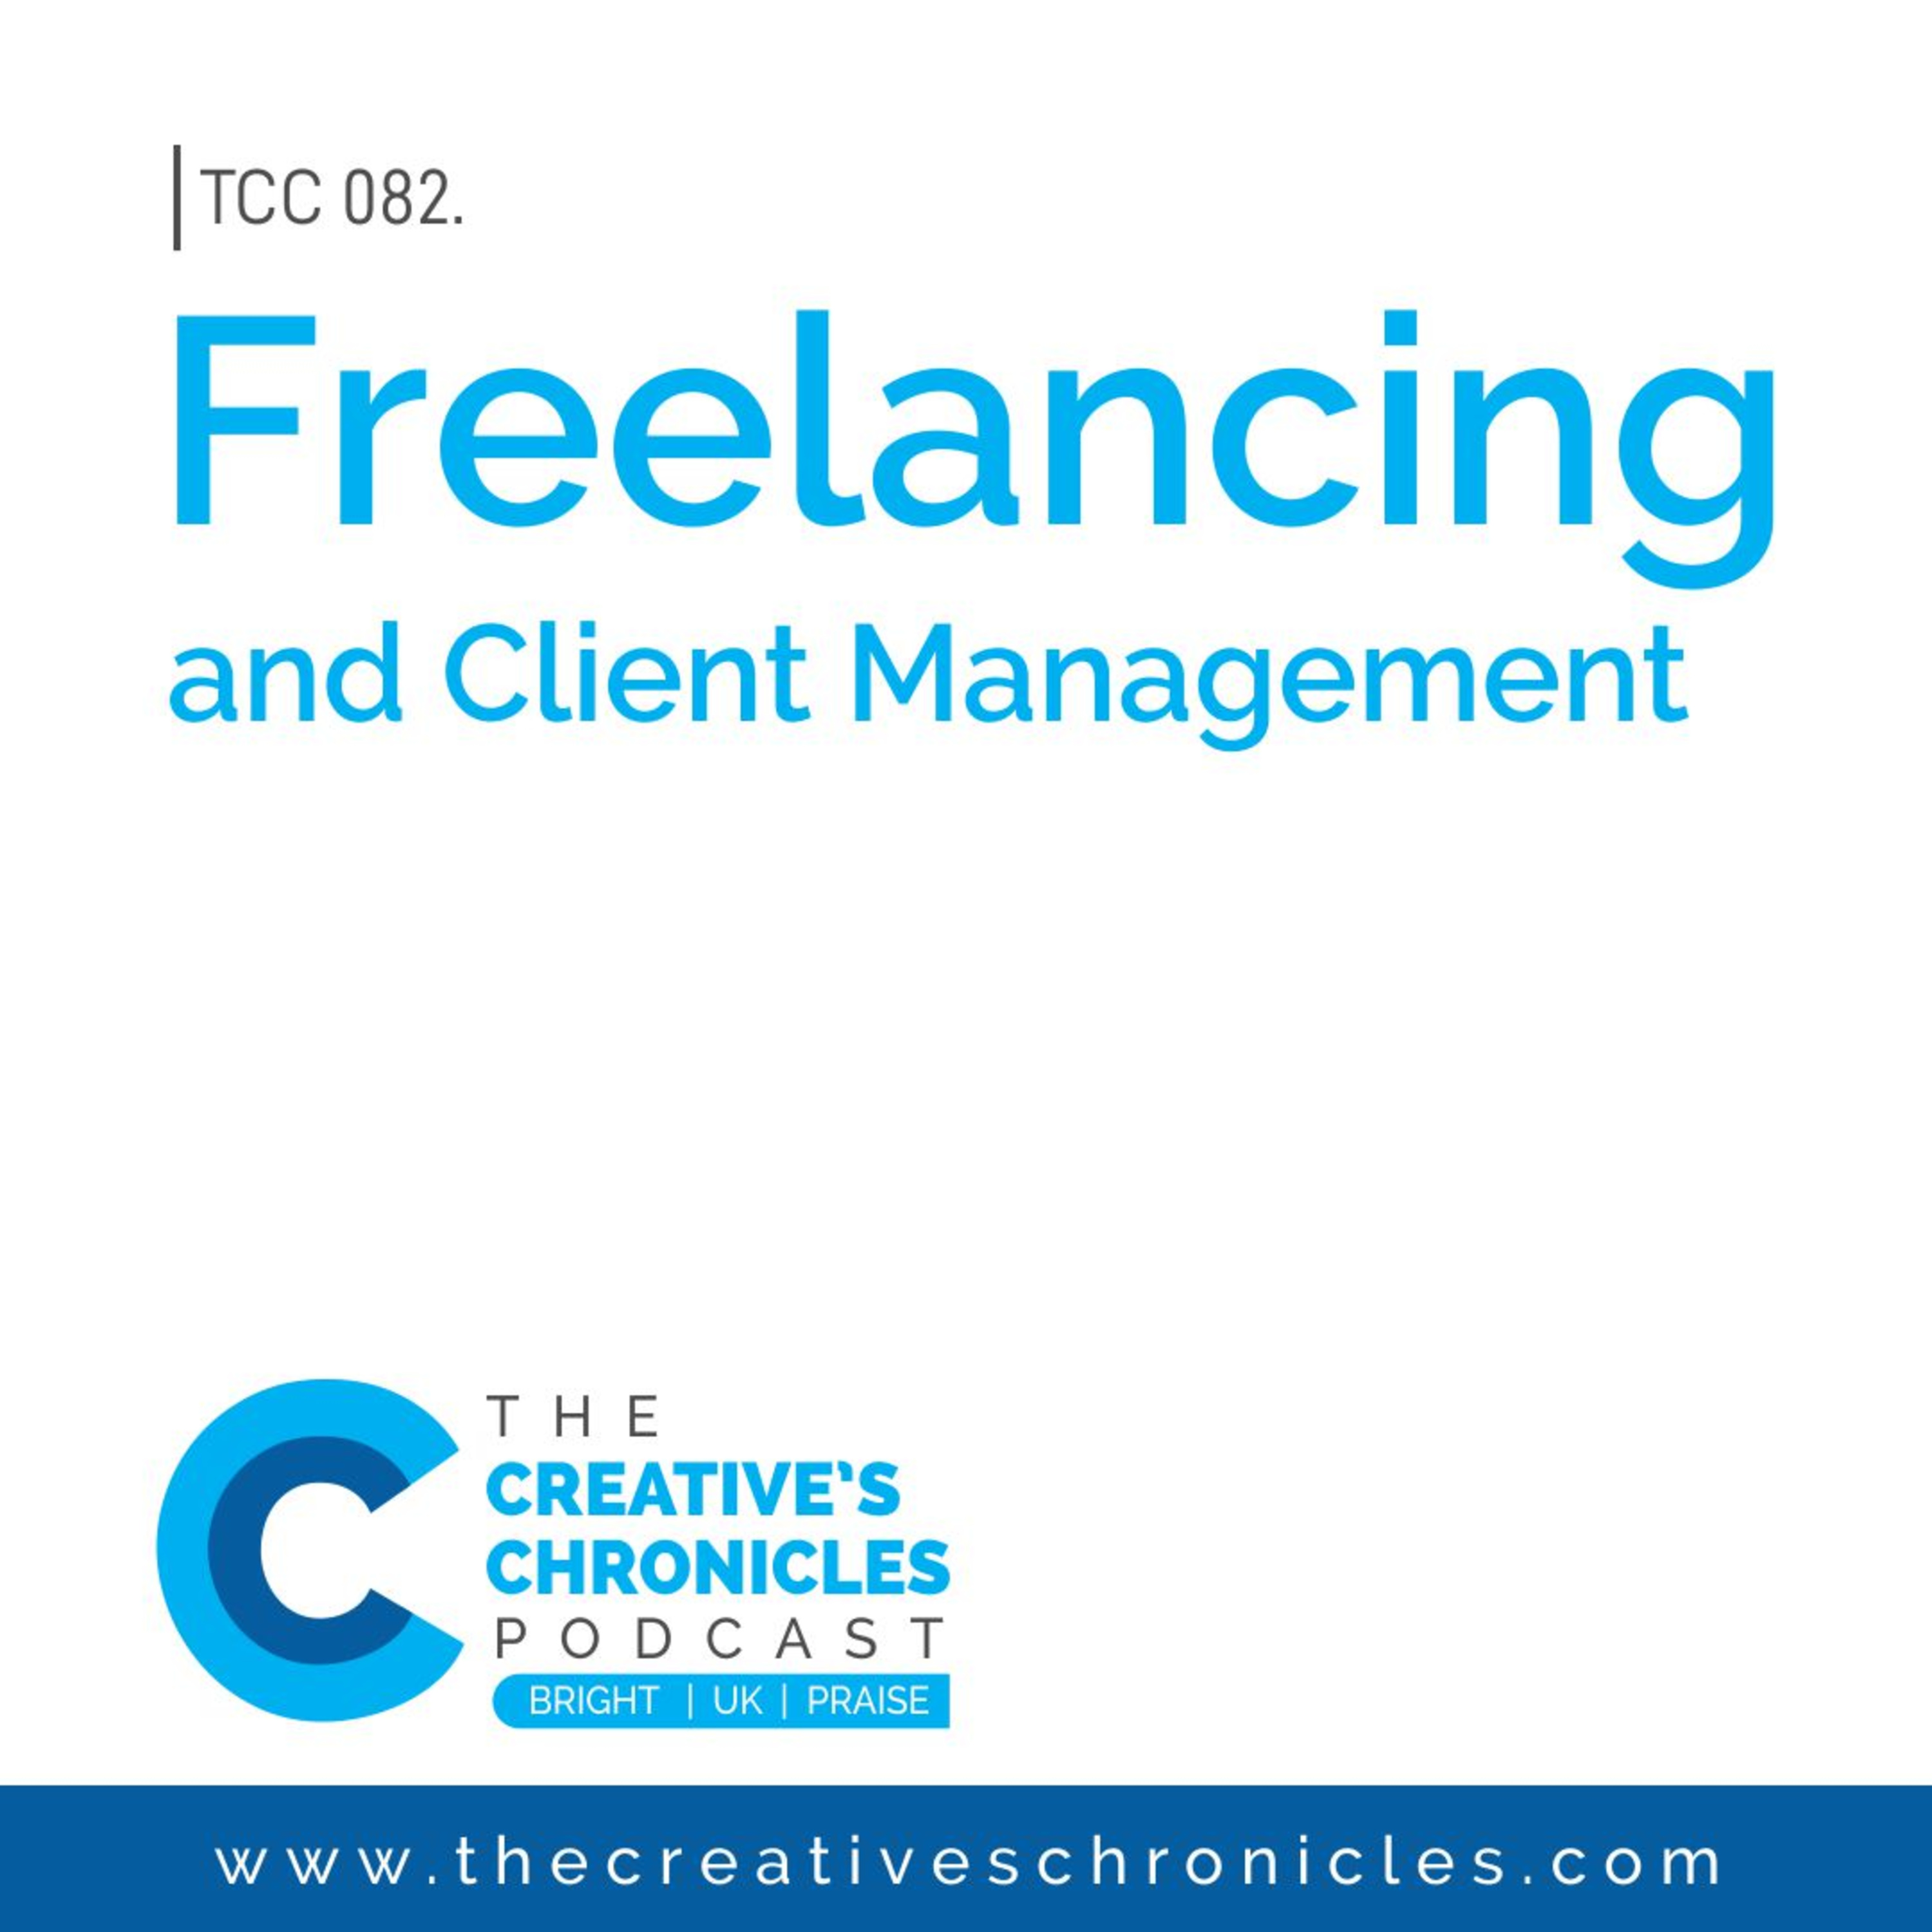 Freelancing and Client Management